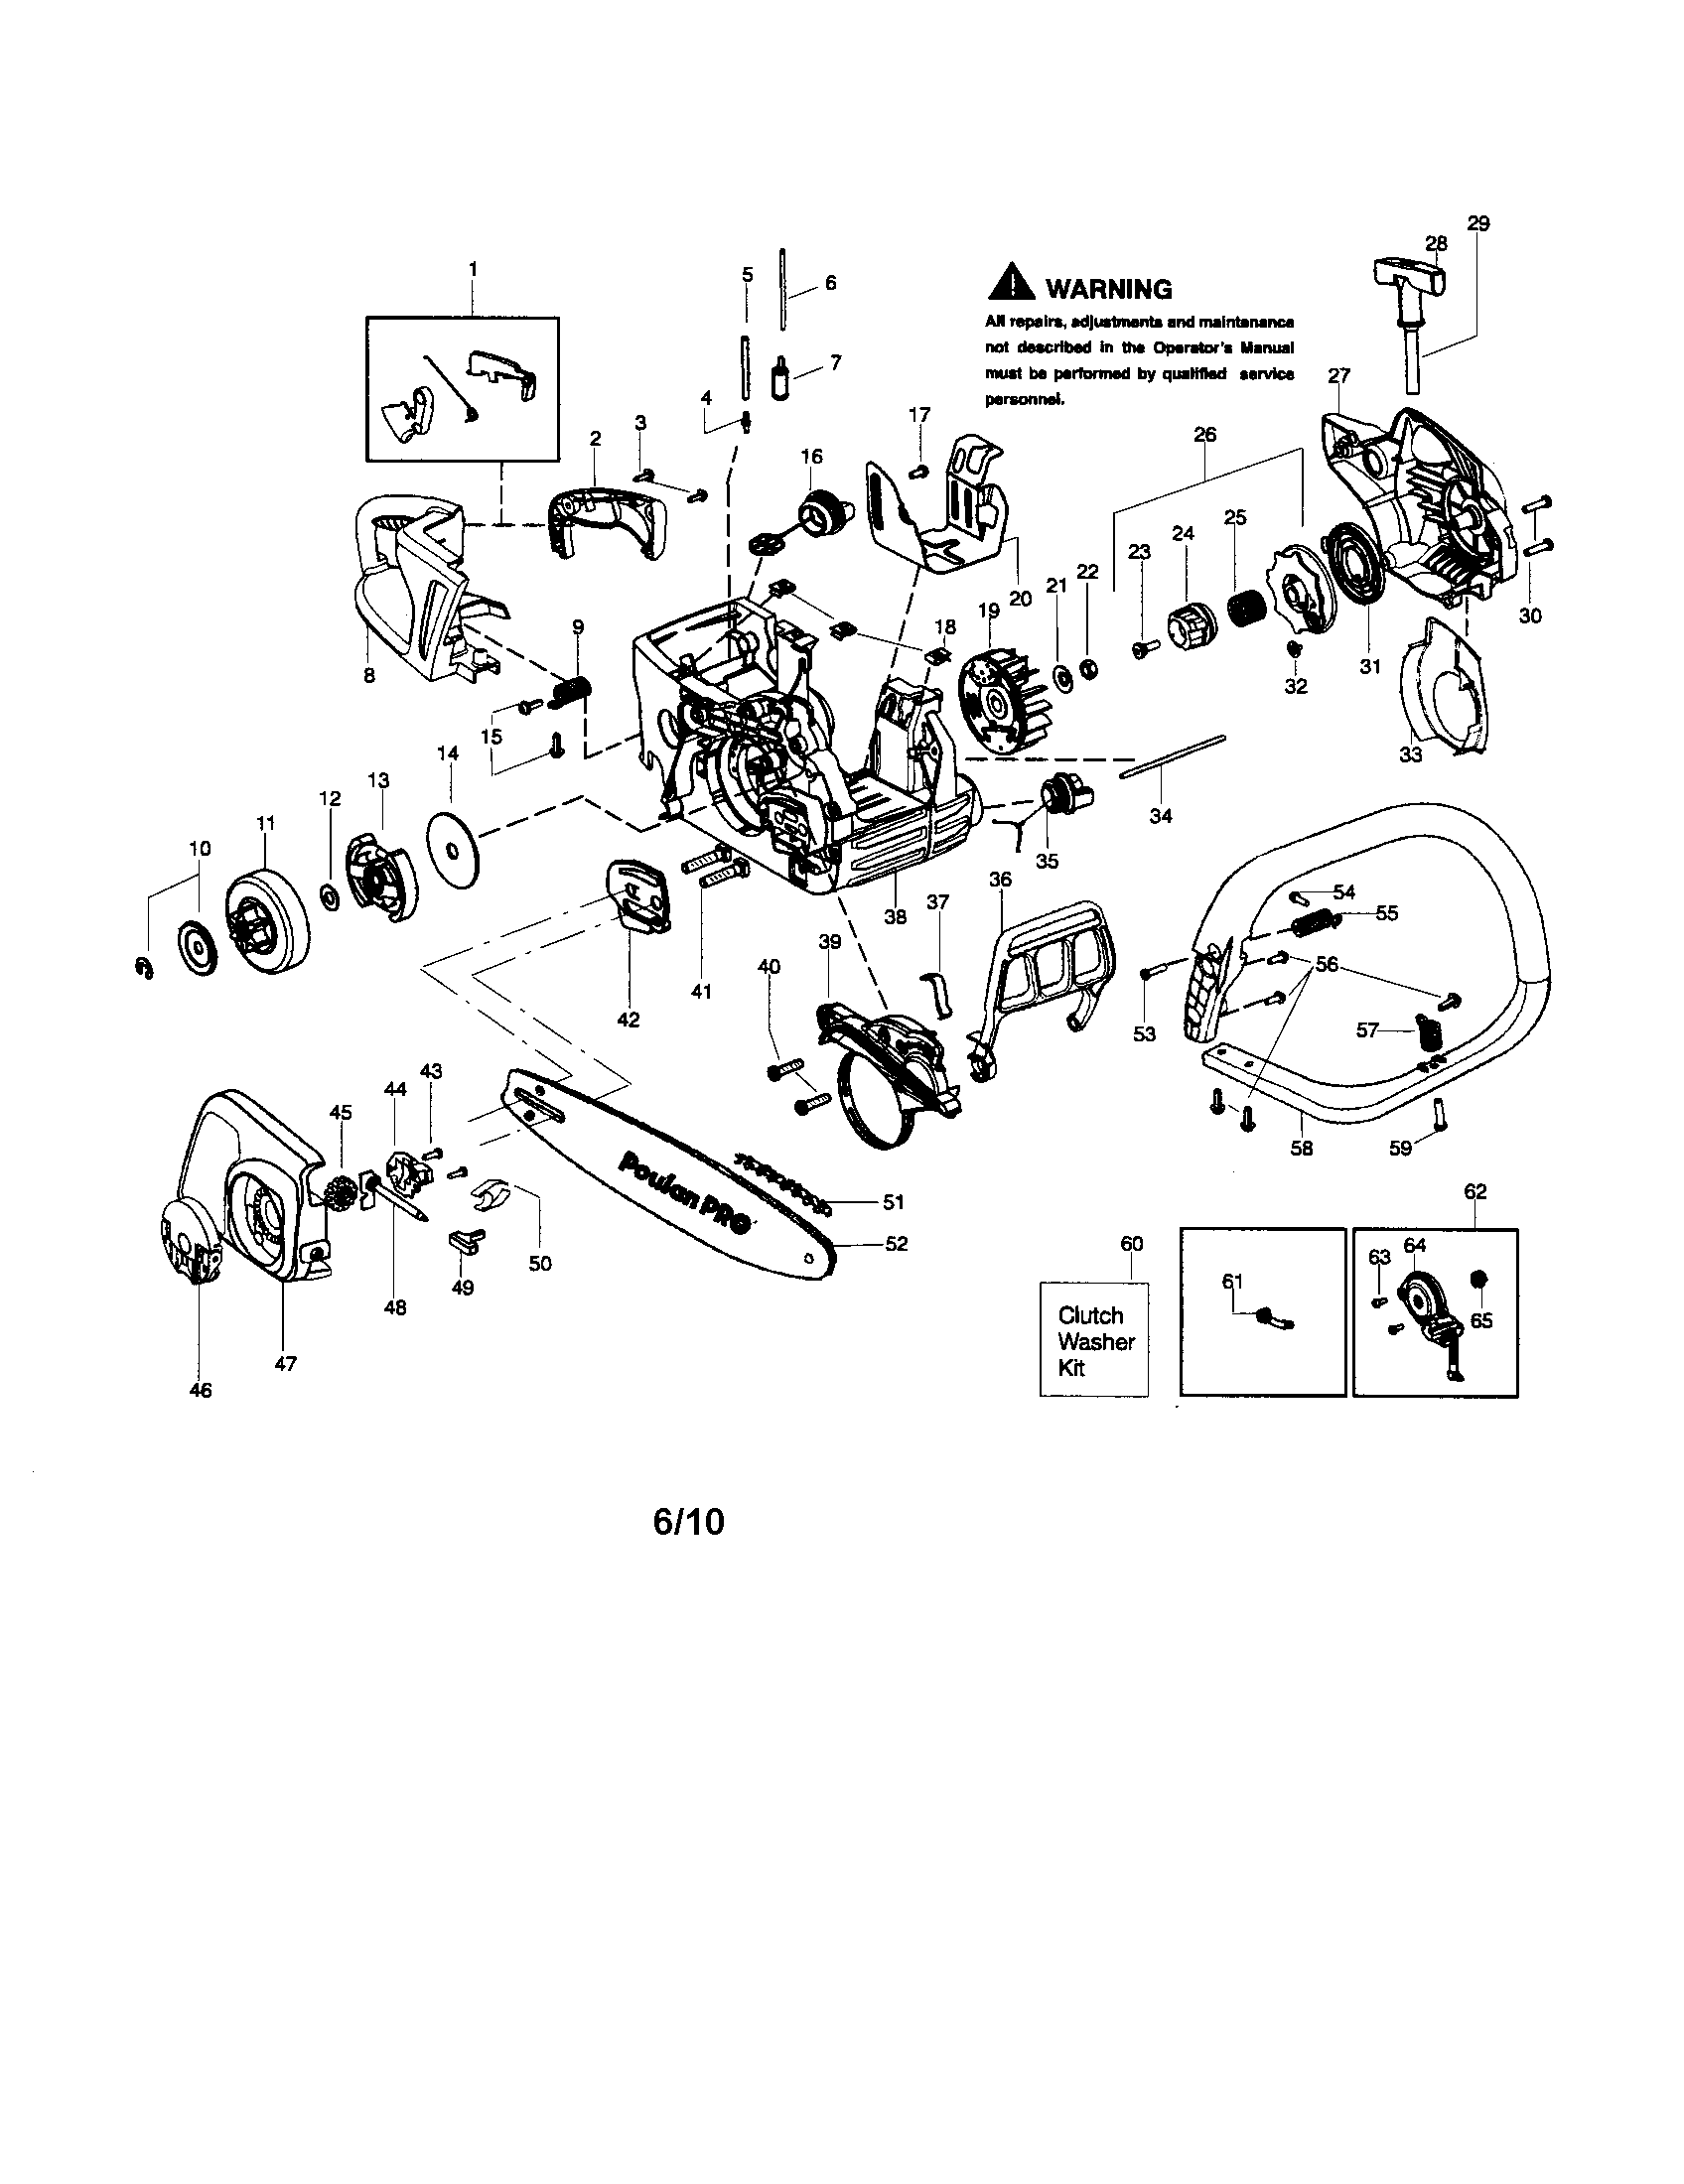 Poulan Pp4218avx Chainsaw Diagram, Poulan, Free Engine